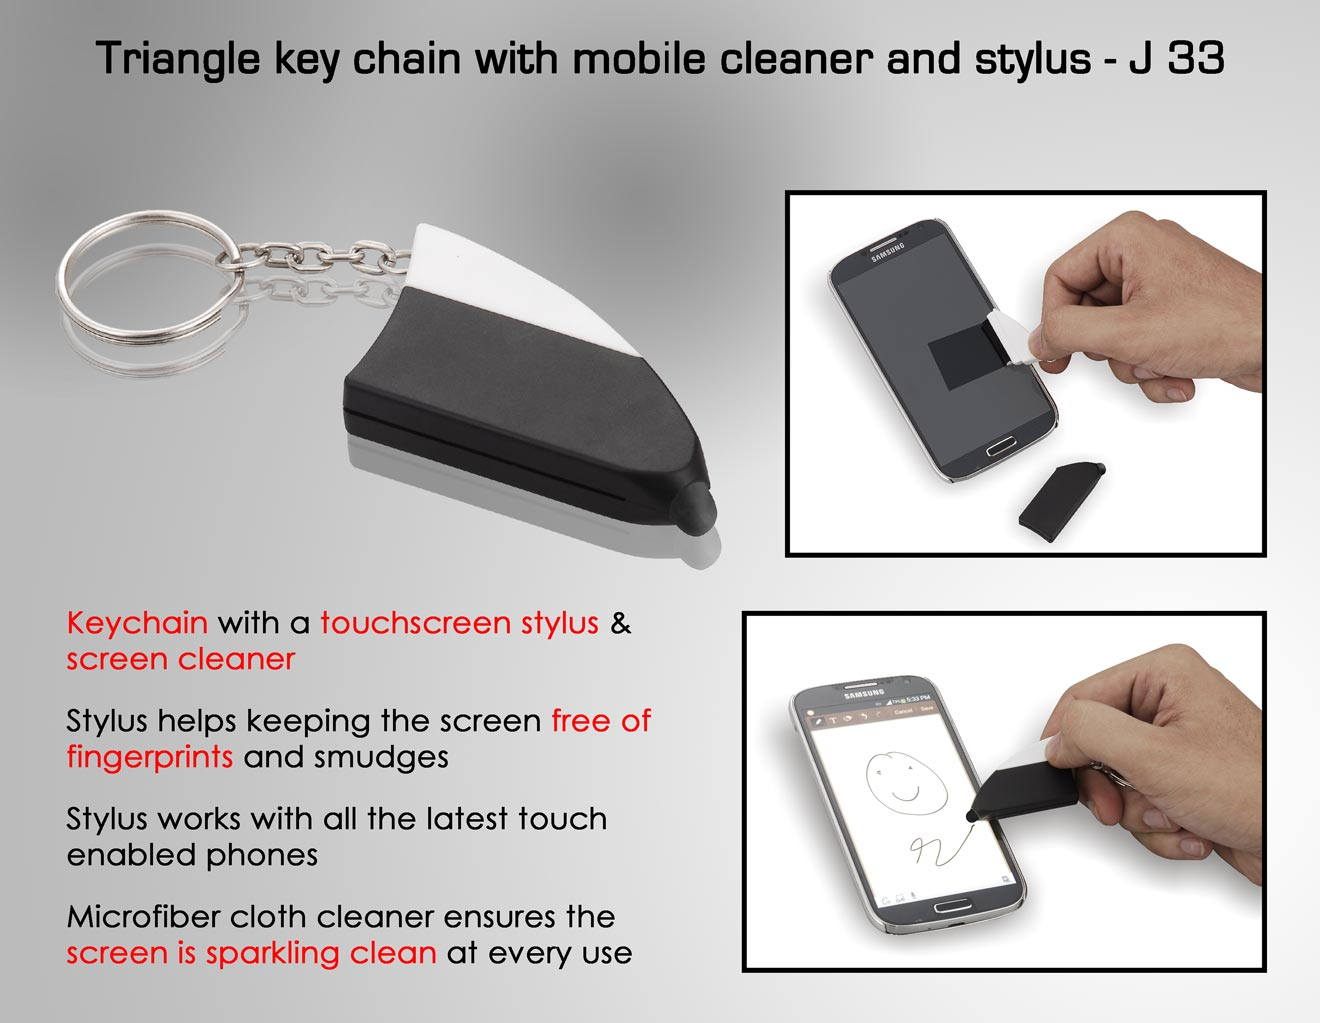 J33 - Triangle key chain with mobile cleaner and stylus